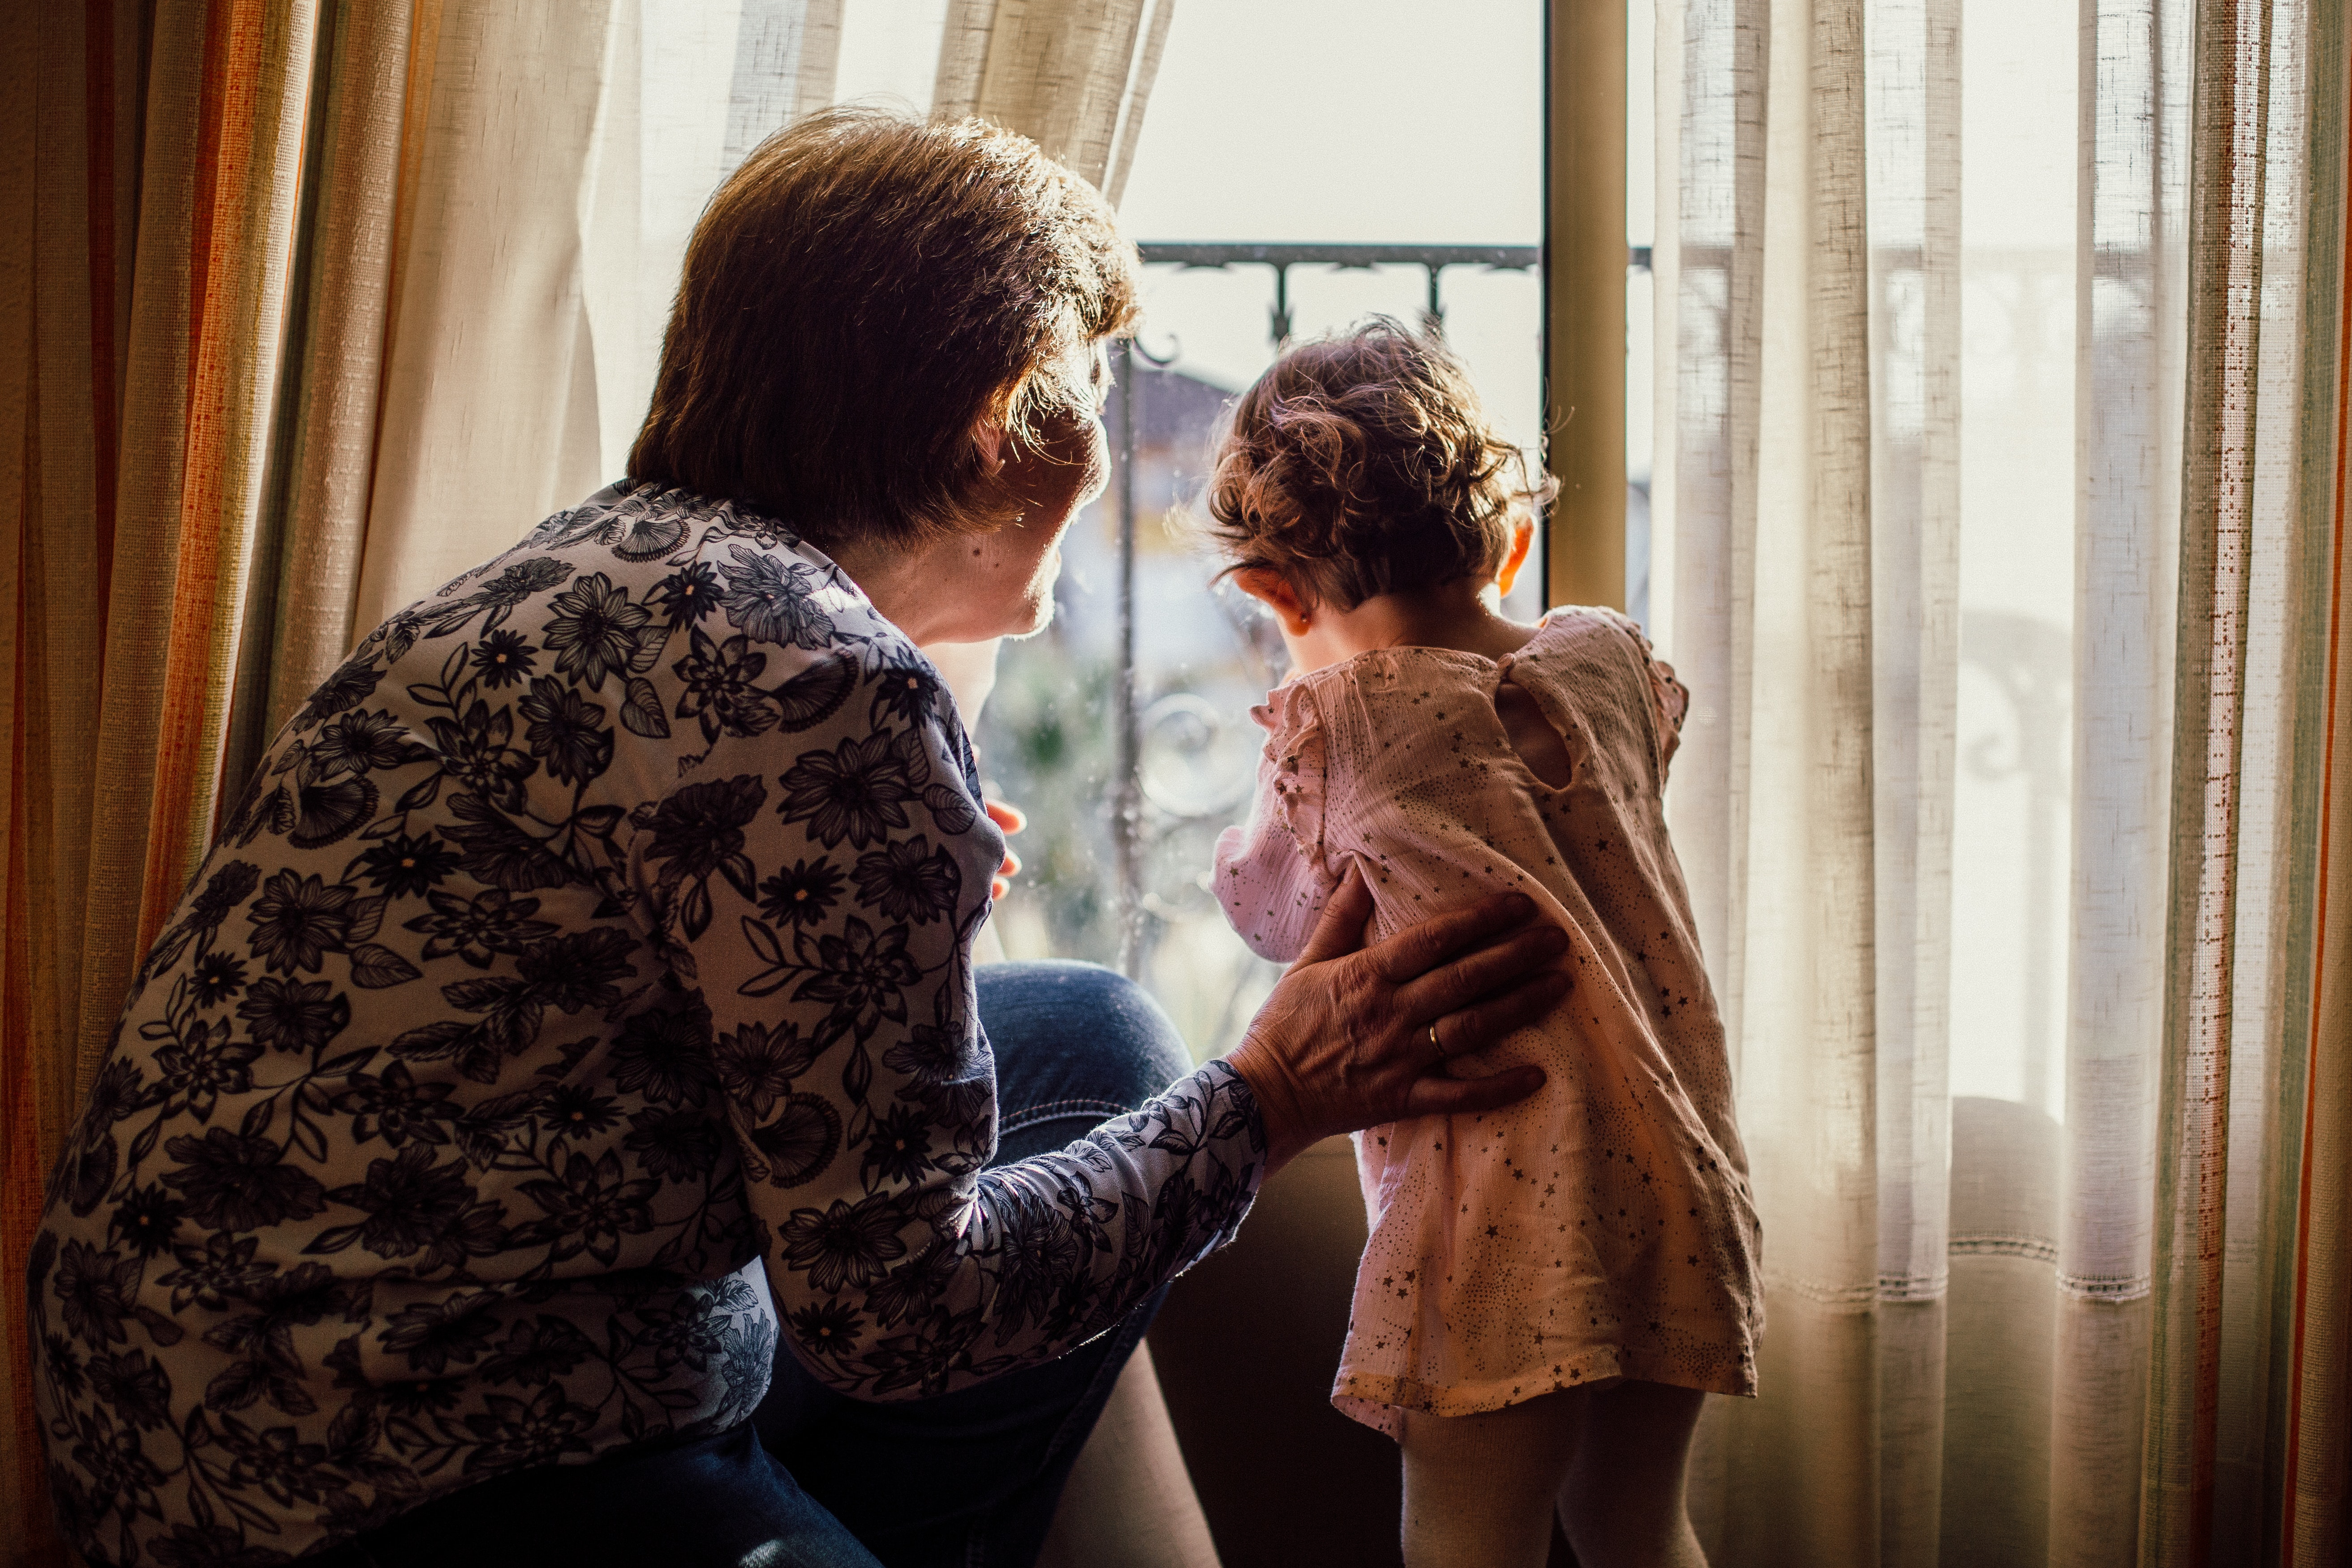 A grandmother looks out a window with her granddaughter